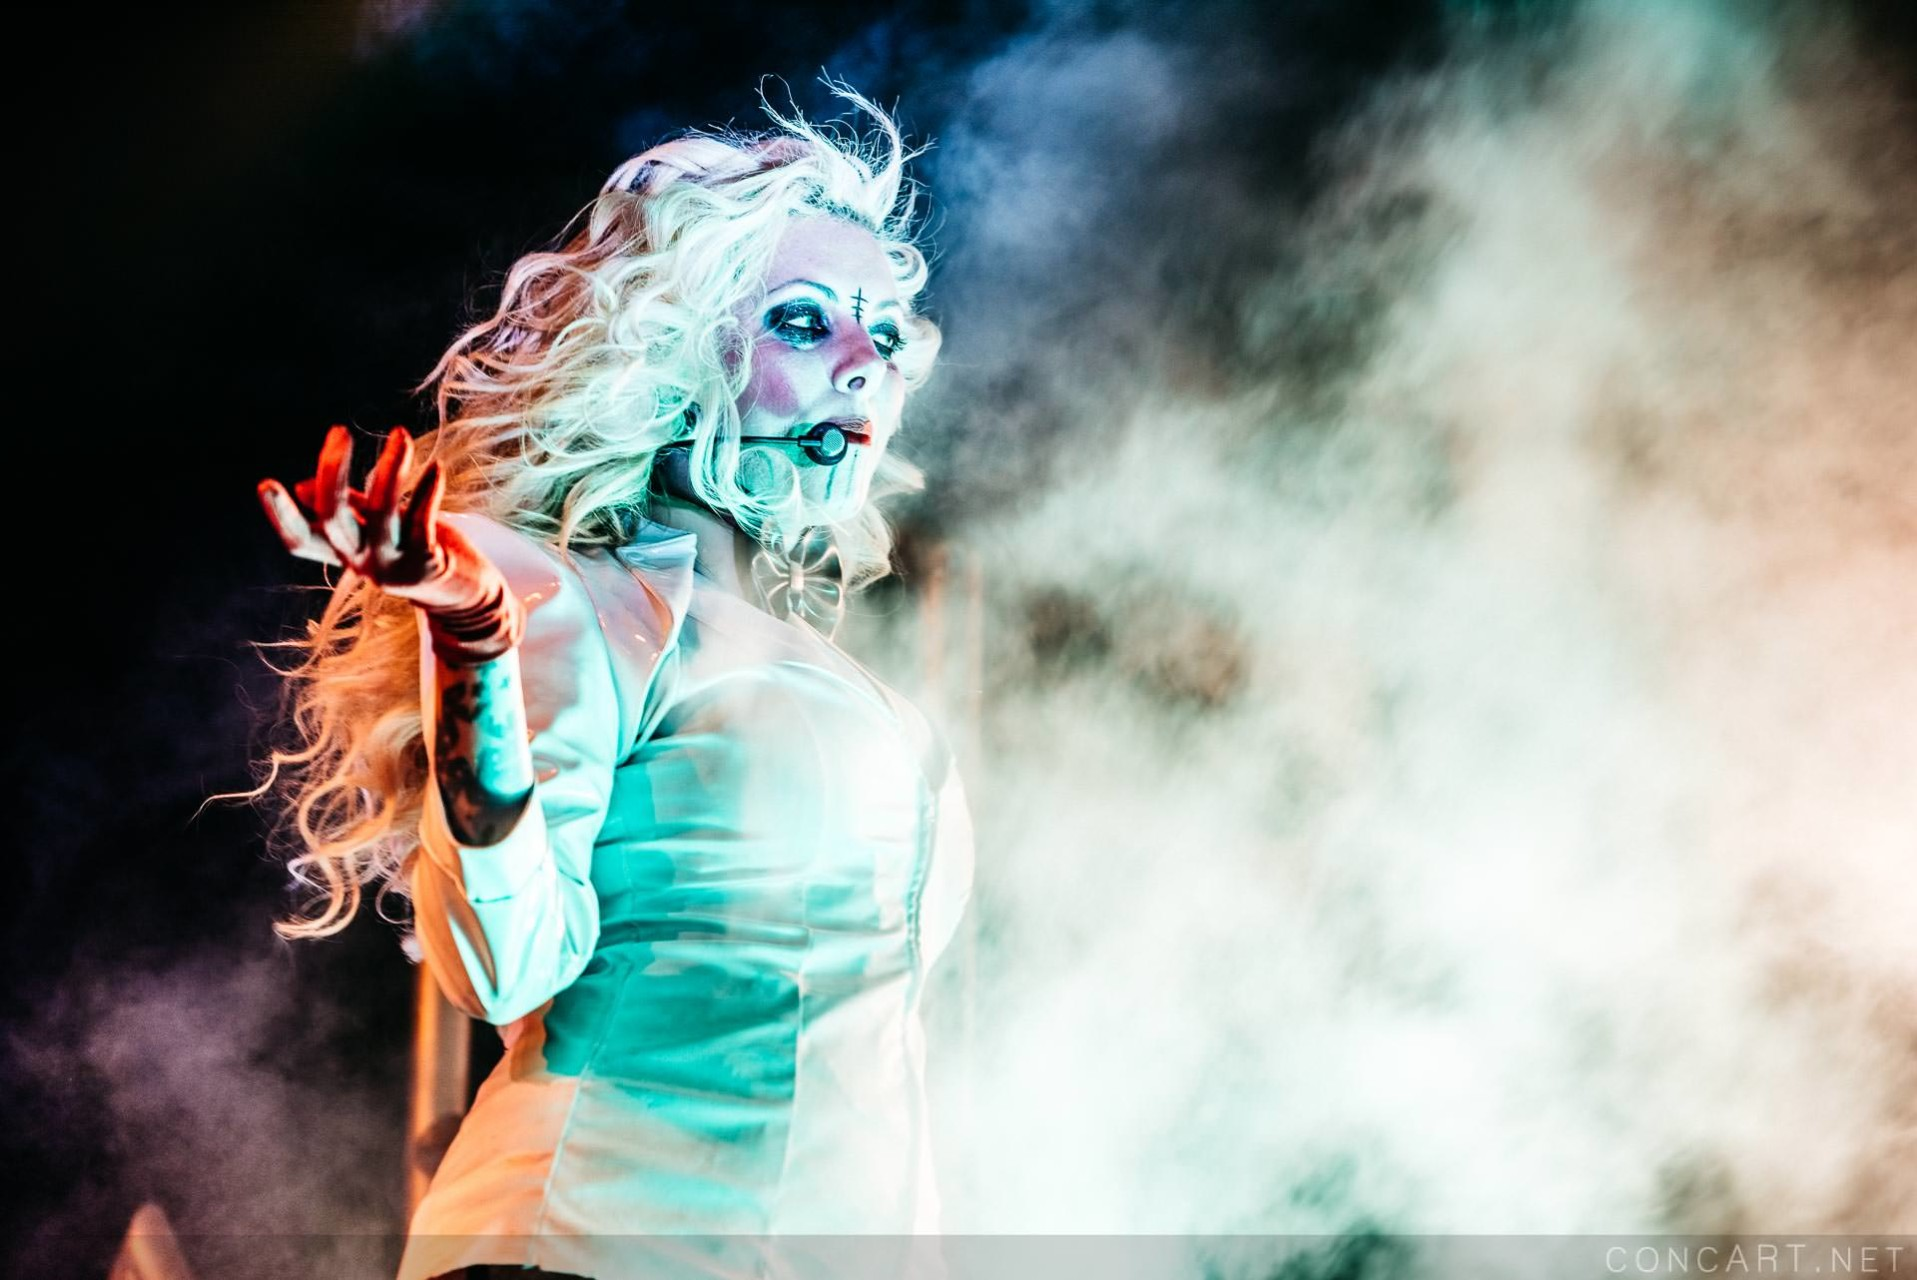 In This Moment photo by Sean Molin 20